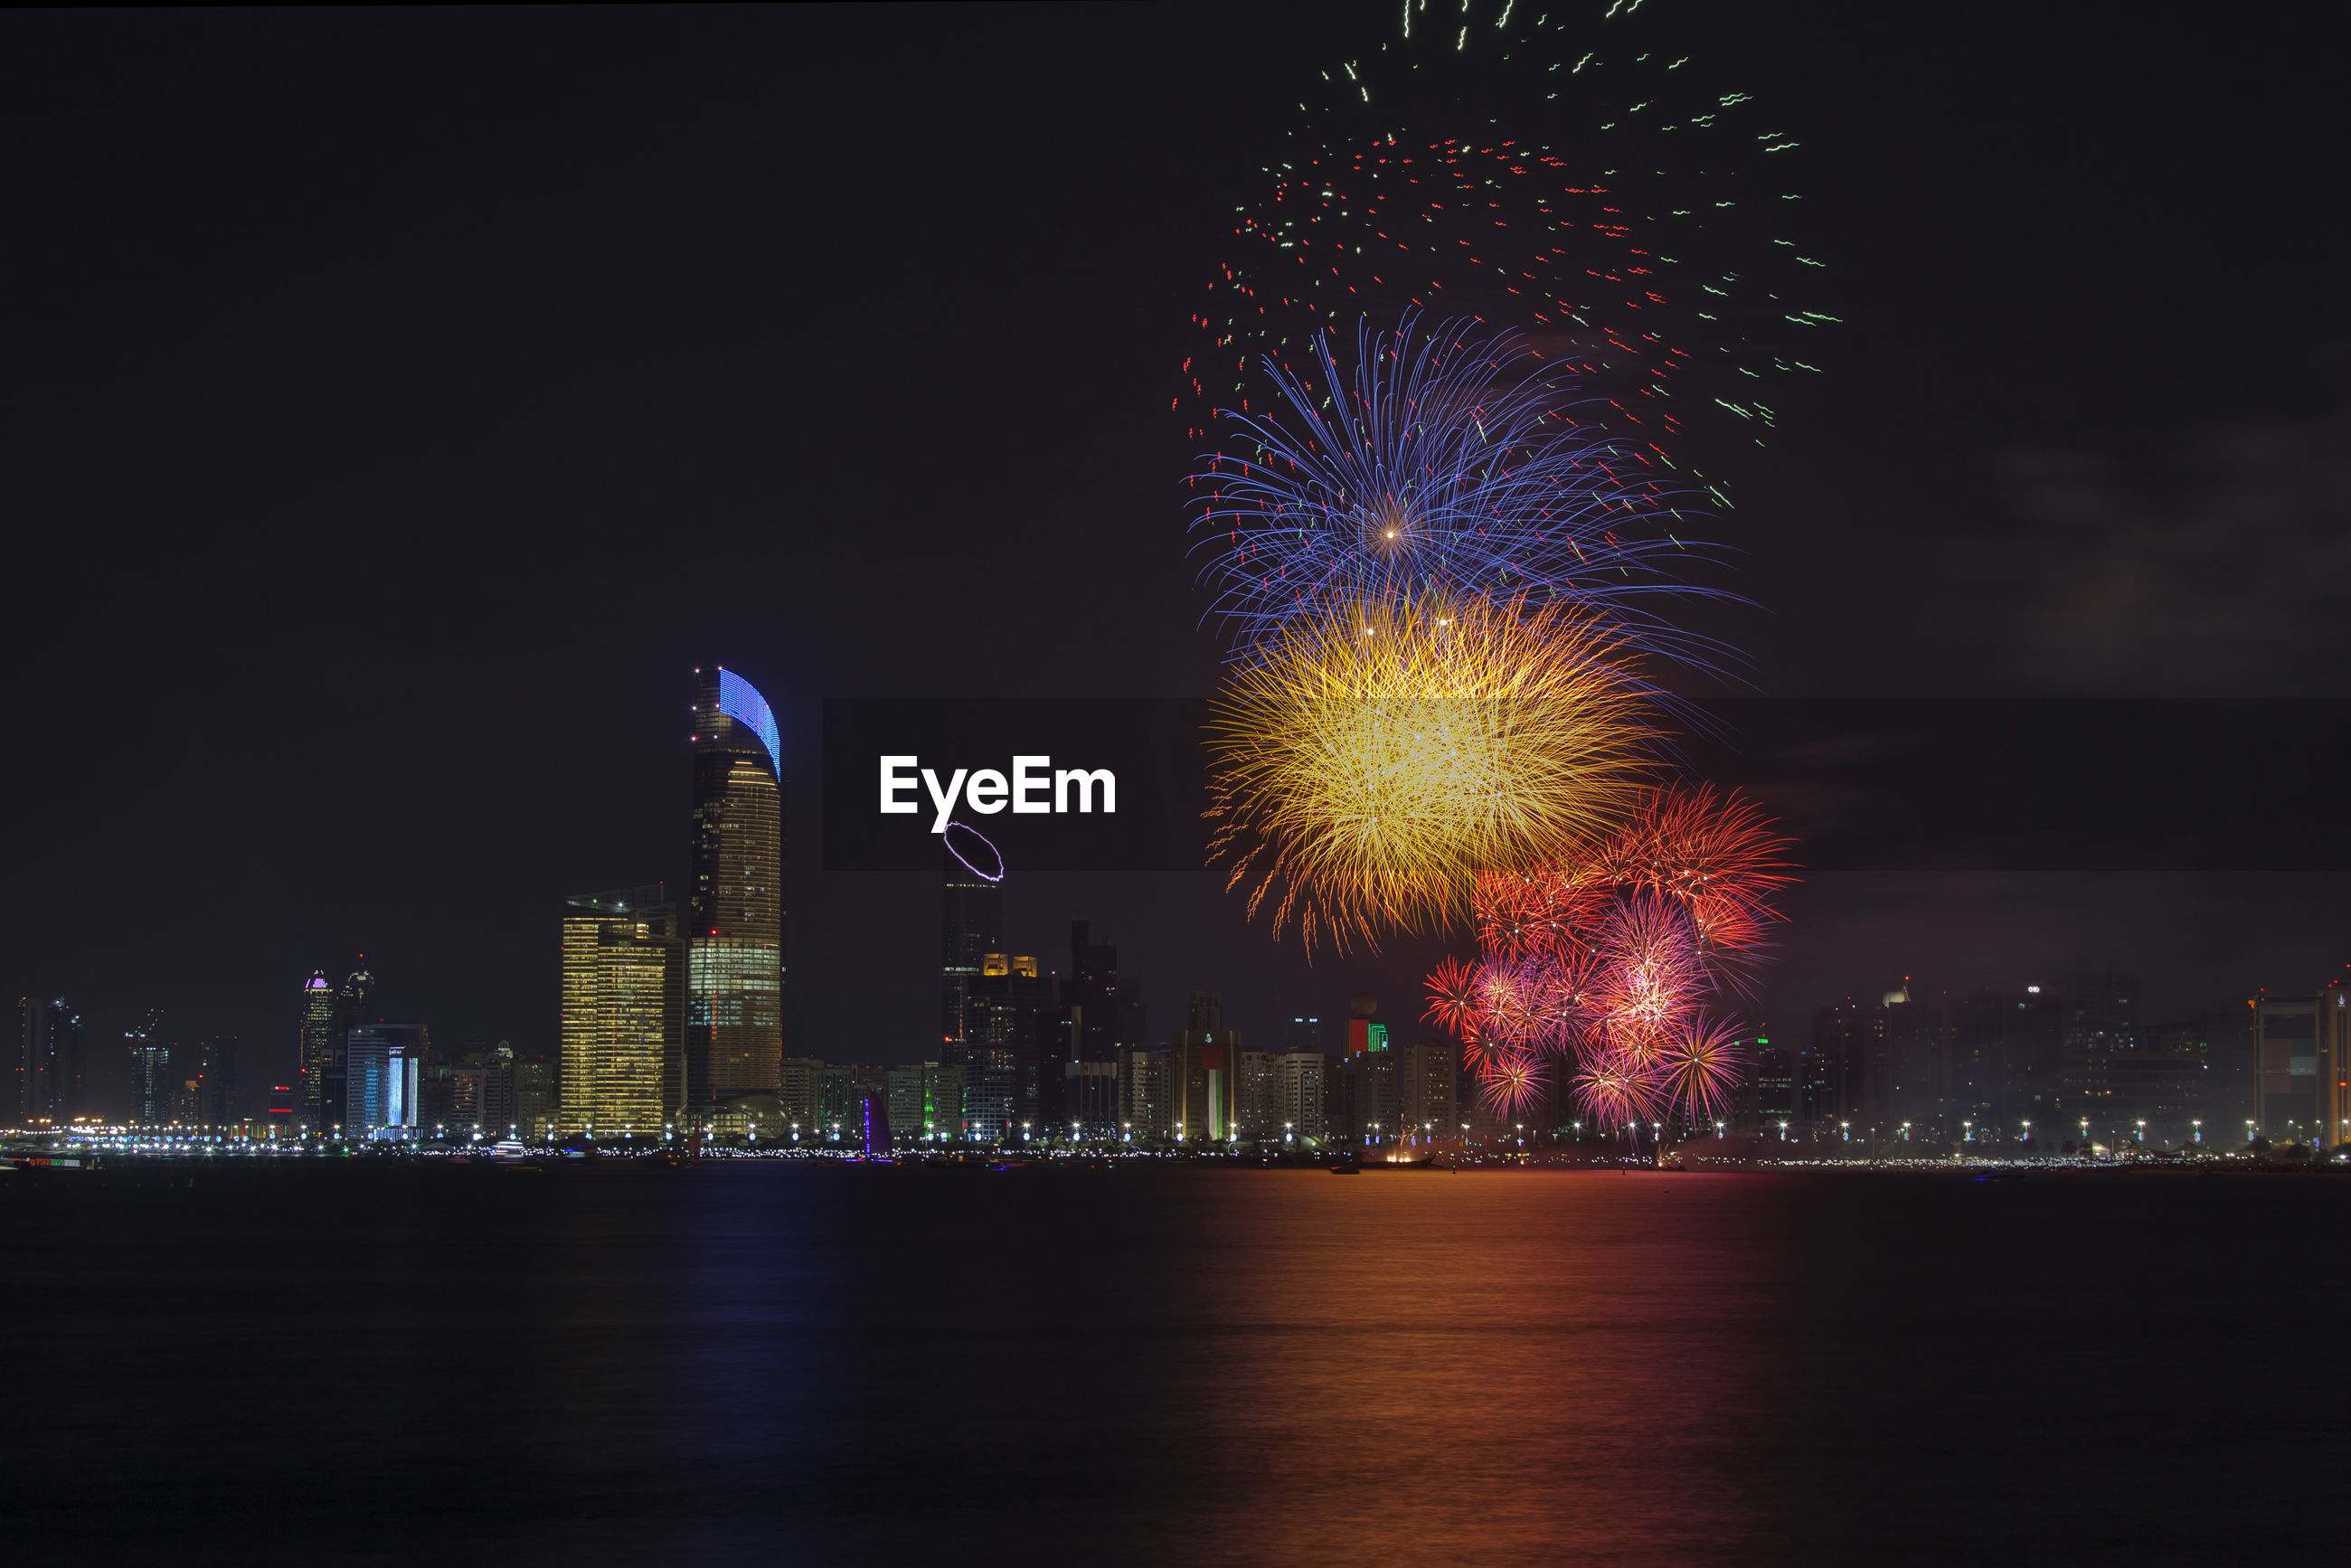 Firework display over river against sky in city at night